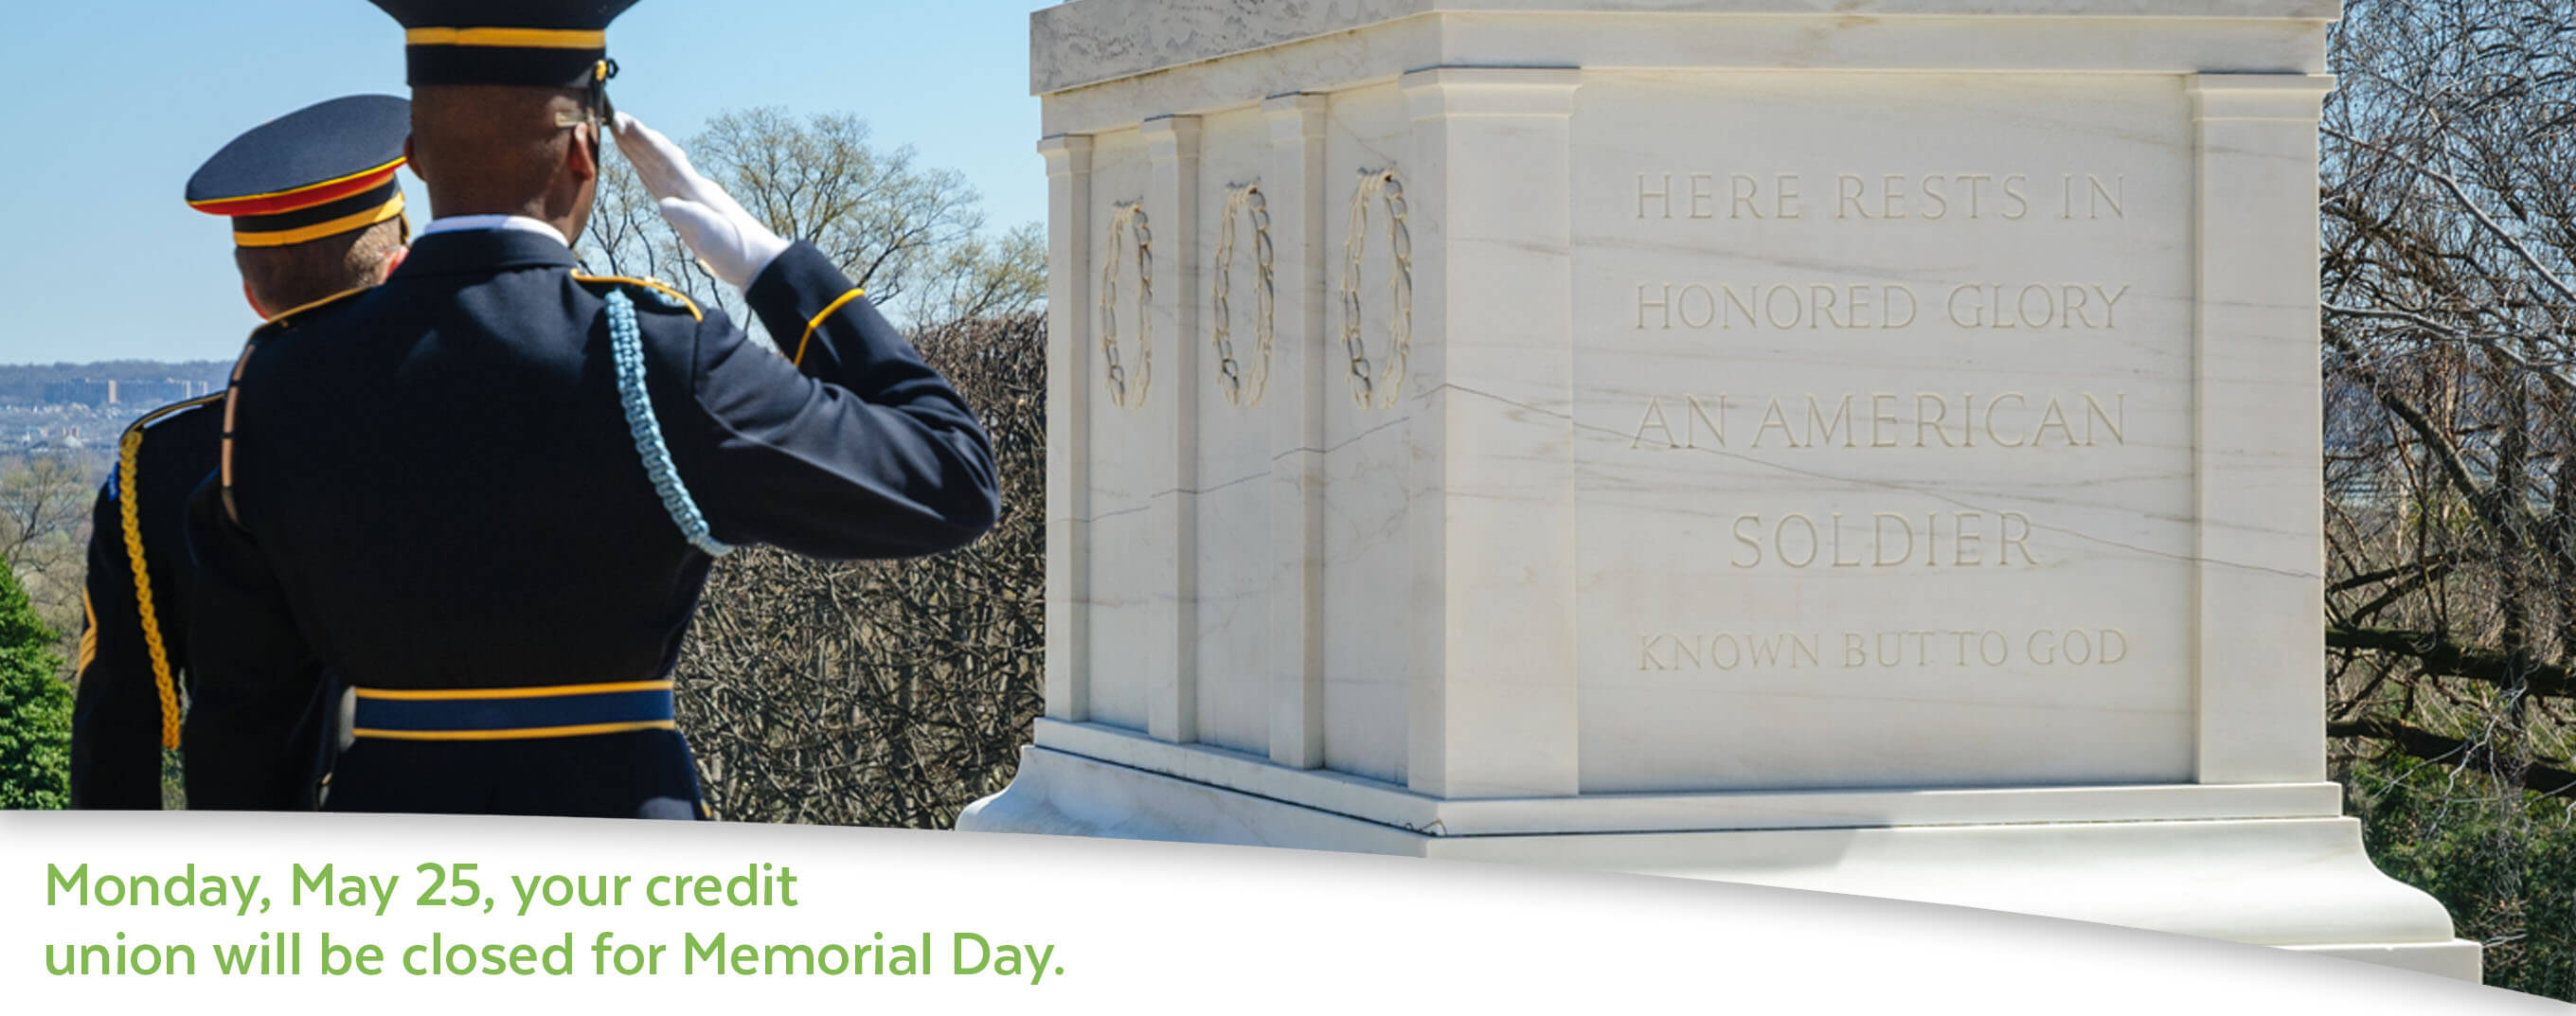 On Monday, May 25, your credit union will be closed for Memorial Day.